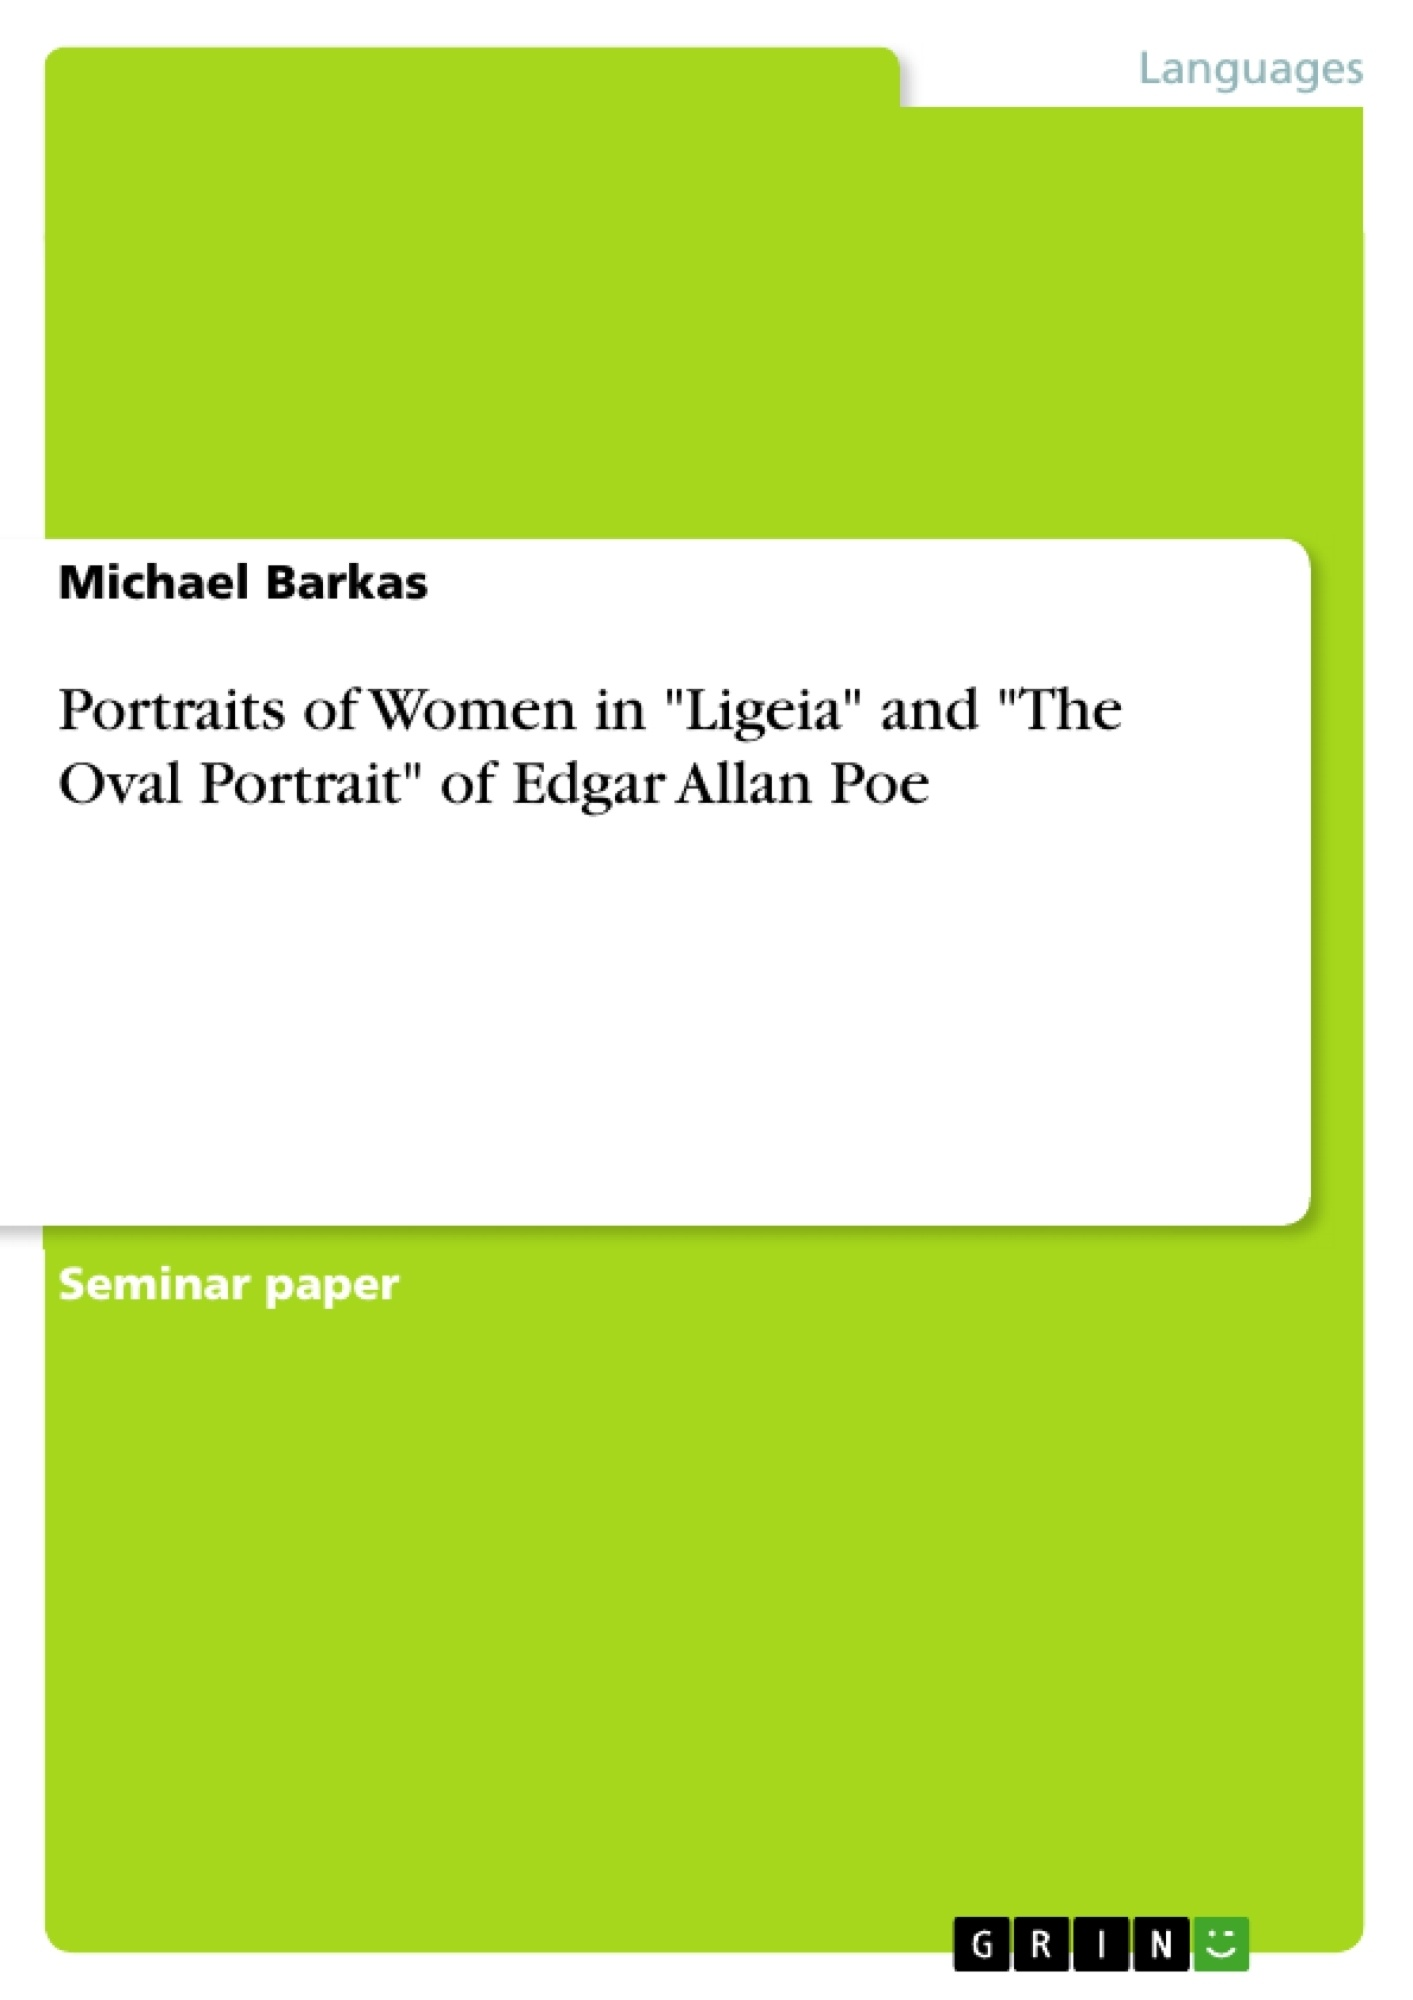 the oval portrait text